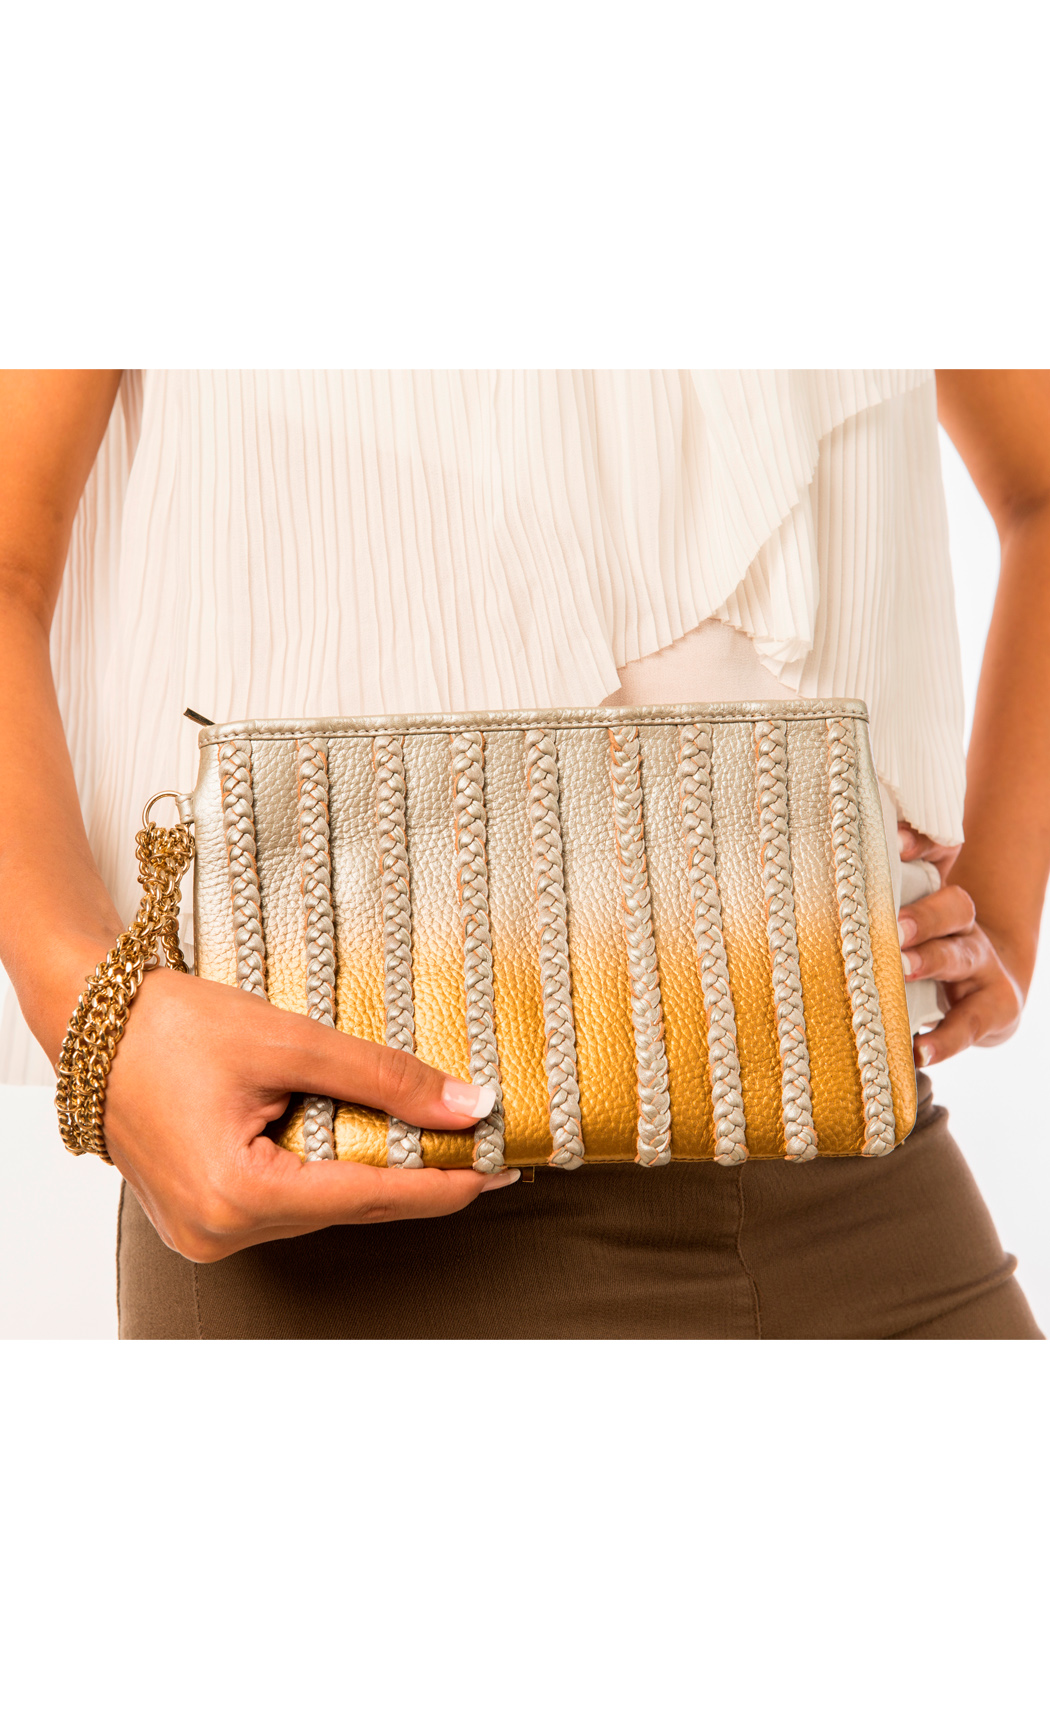 Symphony and Symmetry Plaited Wristlet in Gold-Silver. Buy Online